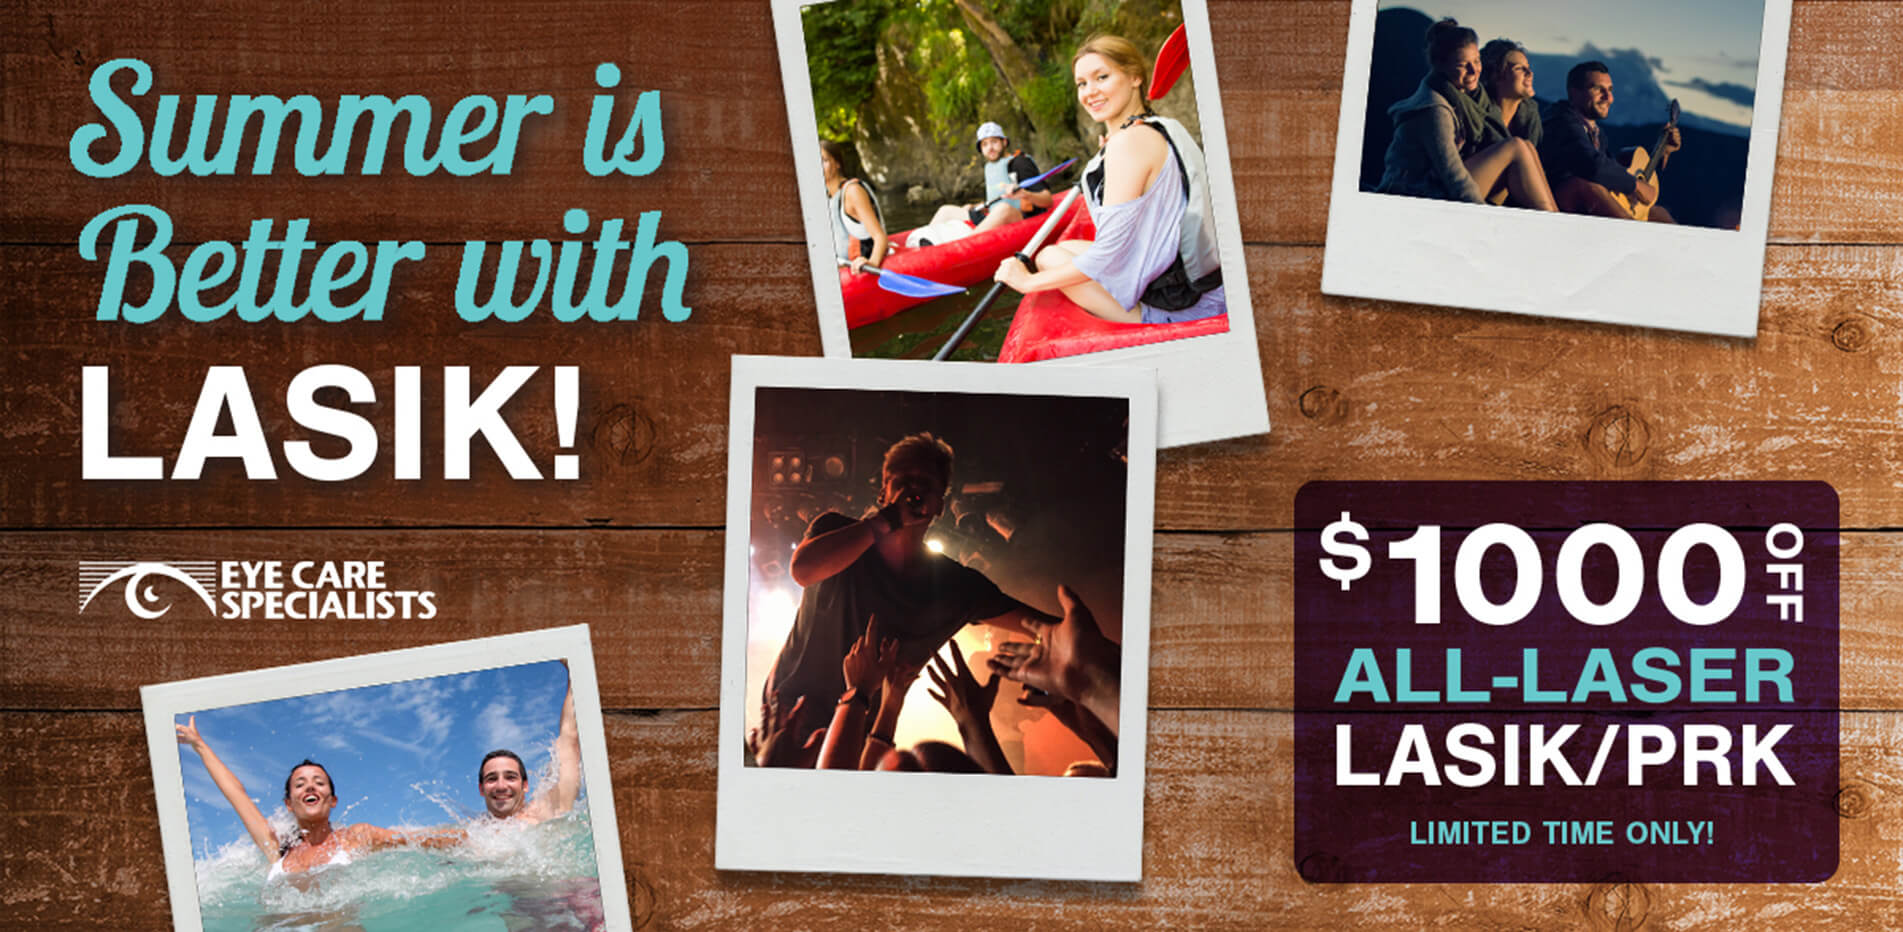 Summer is Better With LASIK! $1000 Off All-Laser LASIK/PRK*